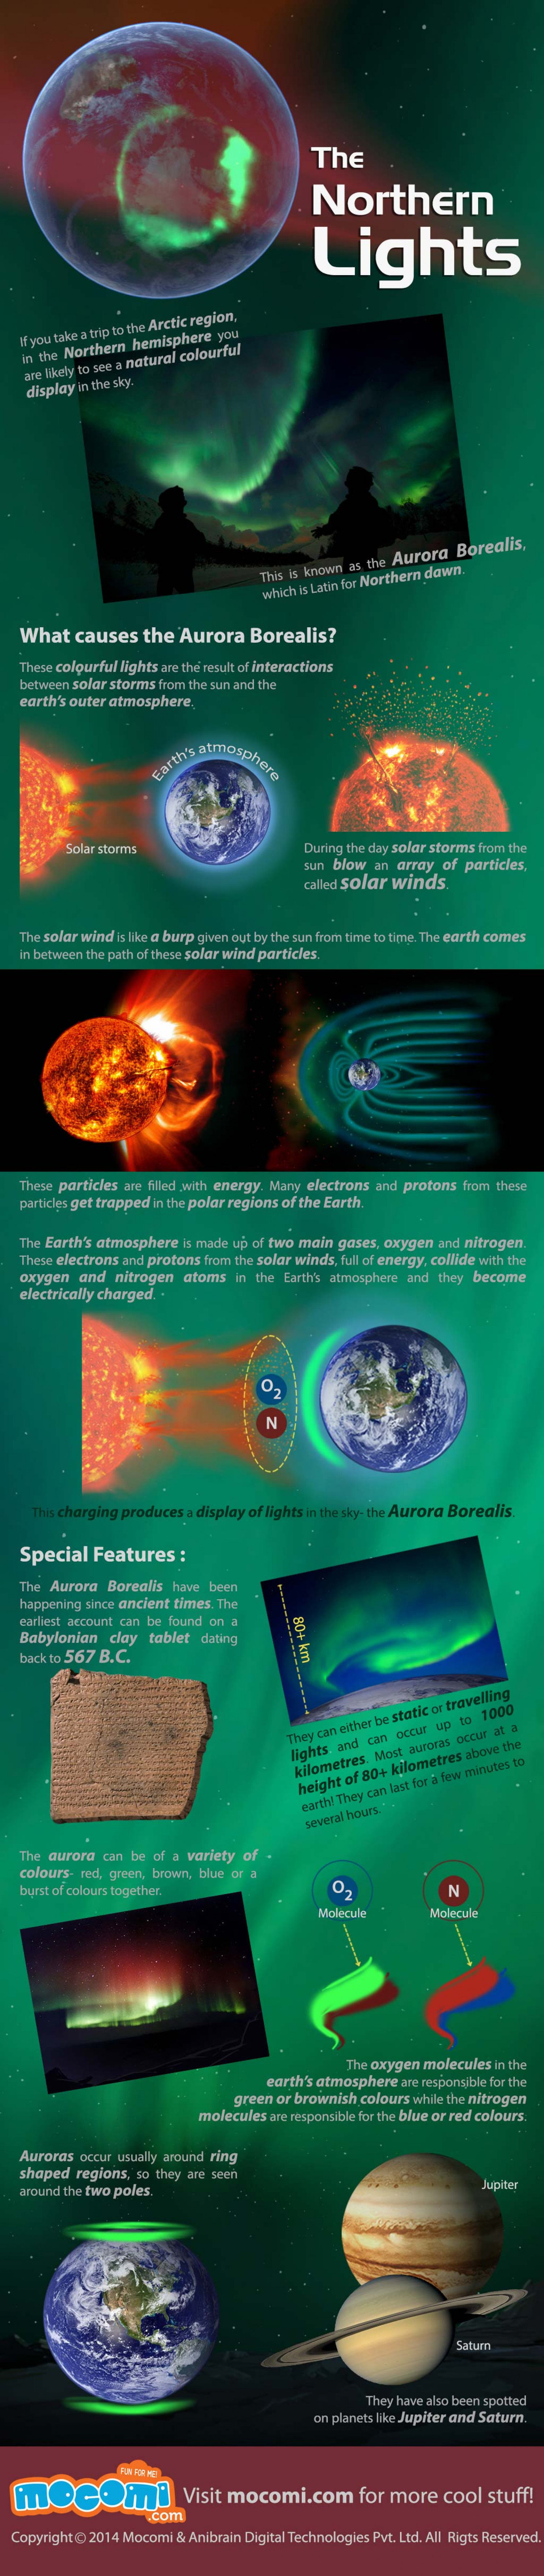 The Northern Lights Infographic